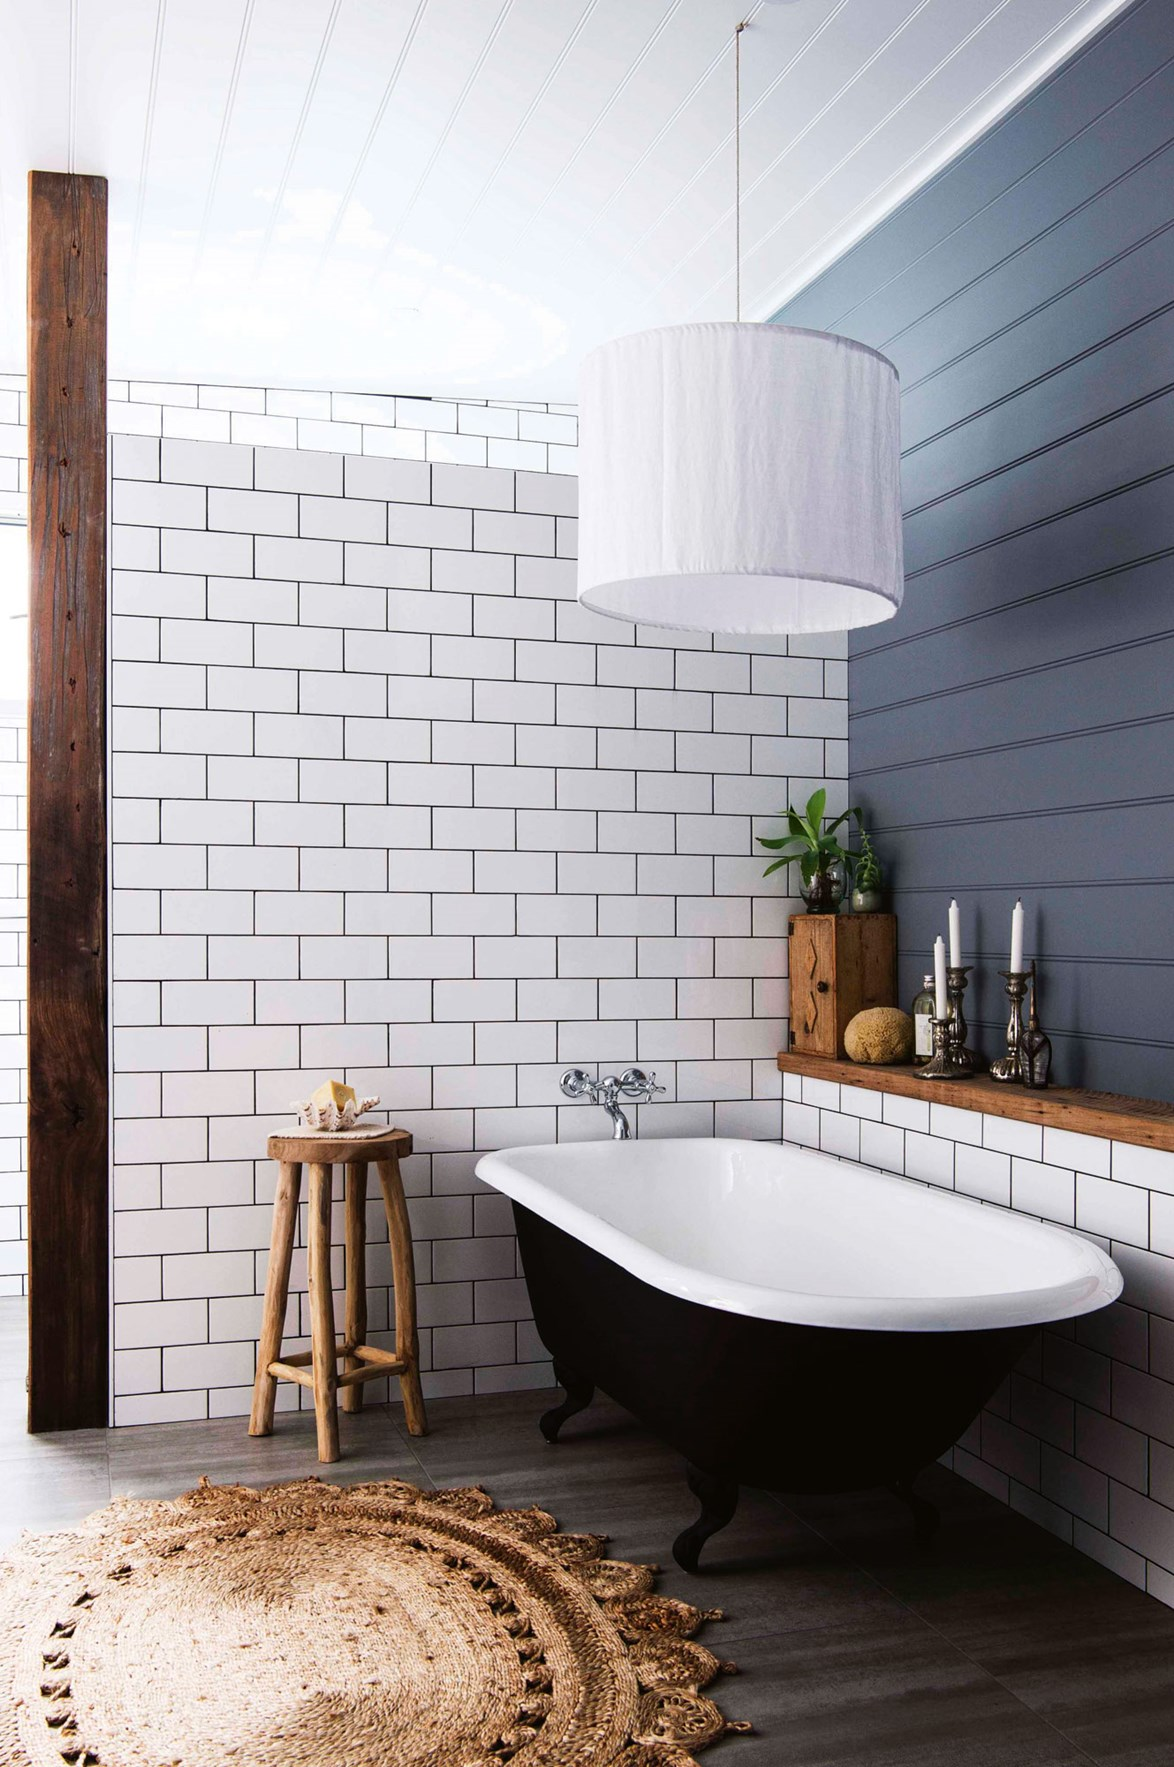 """A freestanding claw-footed tub at a [serene beach house](https://www.homestolove.com.au/serene-nsw-beach-house-filled-with-handmade-furniture-13872 target=""""_blank"""") has been modernised with a lick of black paint, while a handy timber shelf adds texture and functionality to the bathing nook. *Photo: Brigid Arnott / Styling: Vanessa Colyer Tay / Story: Country Style*"""